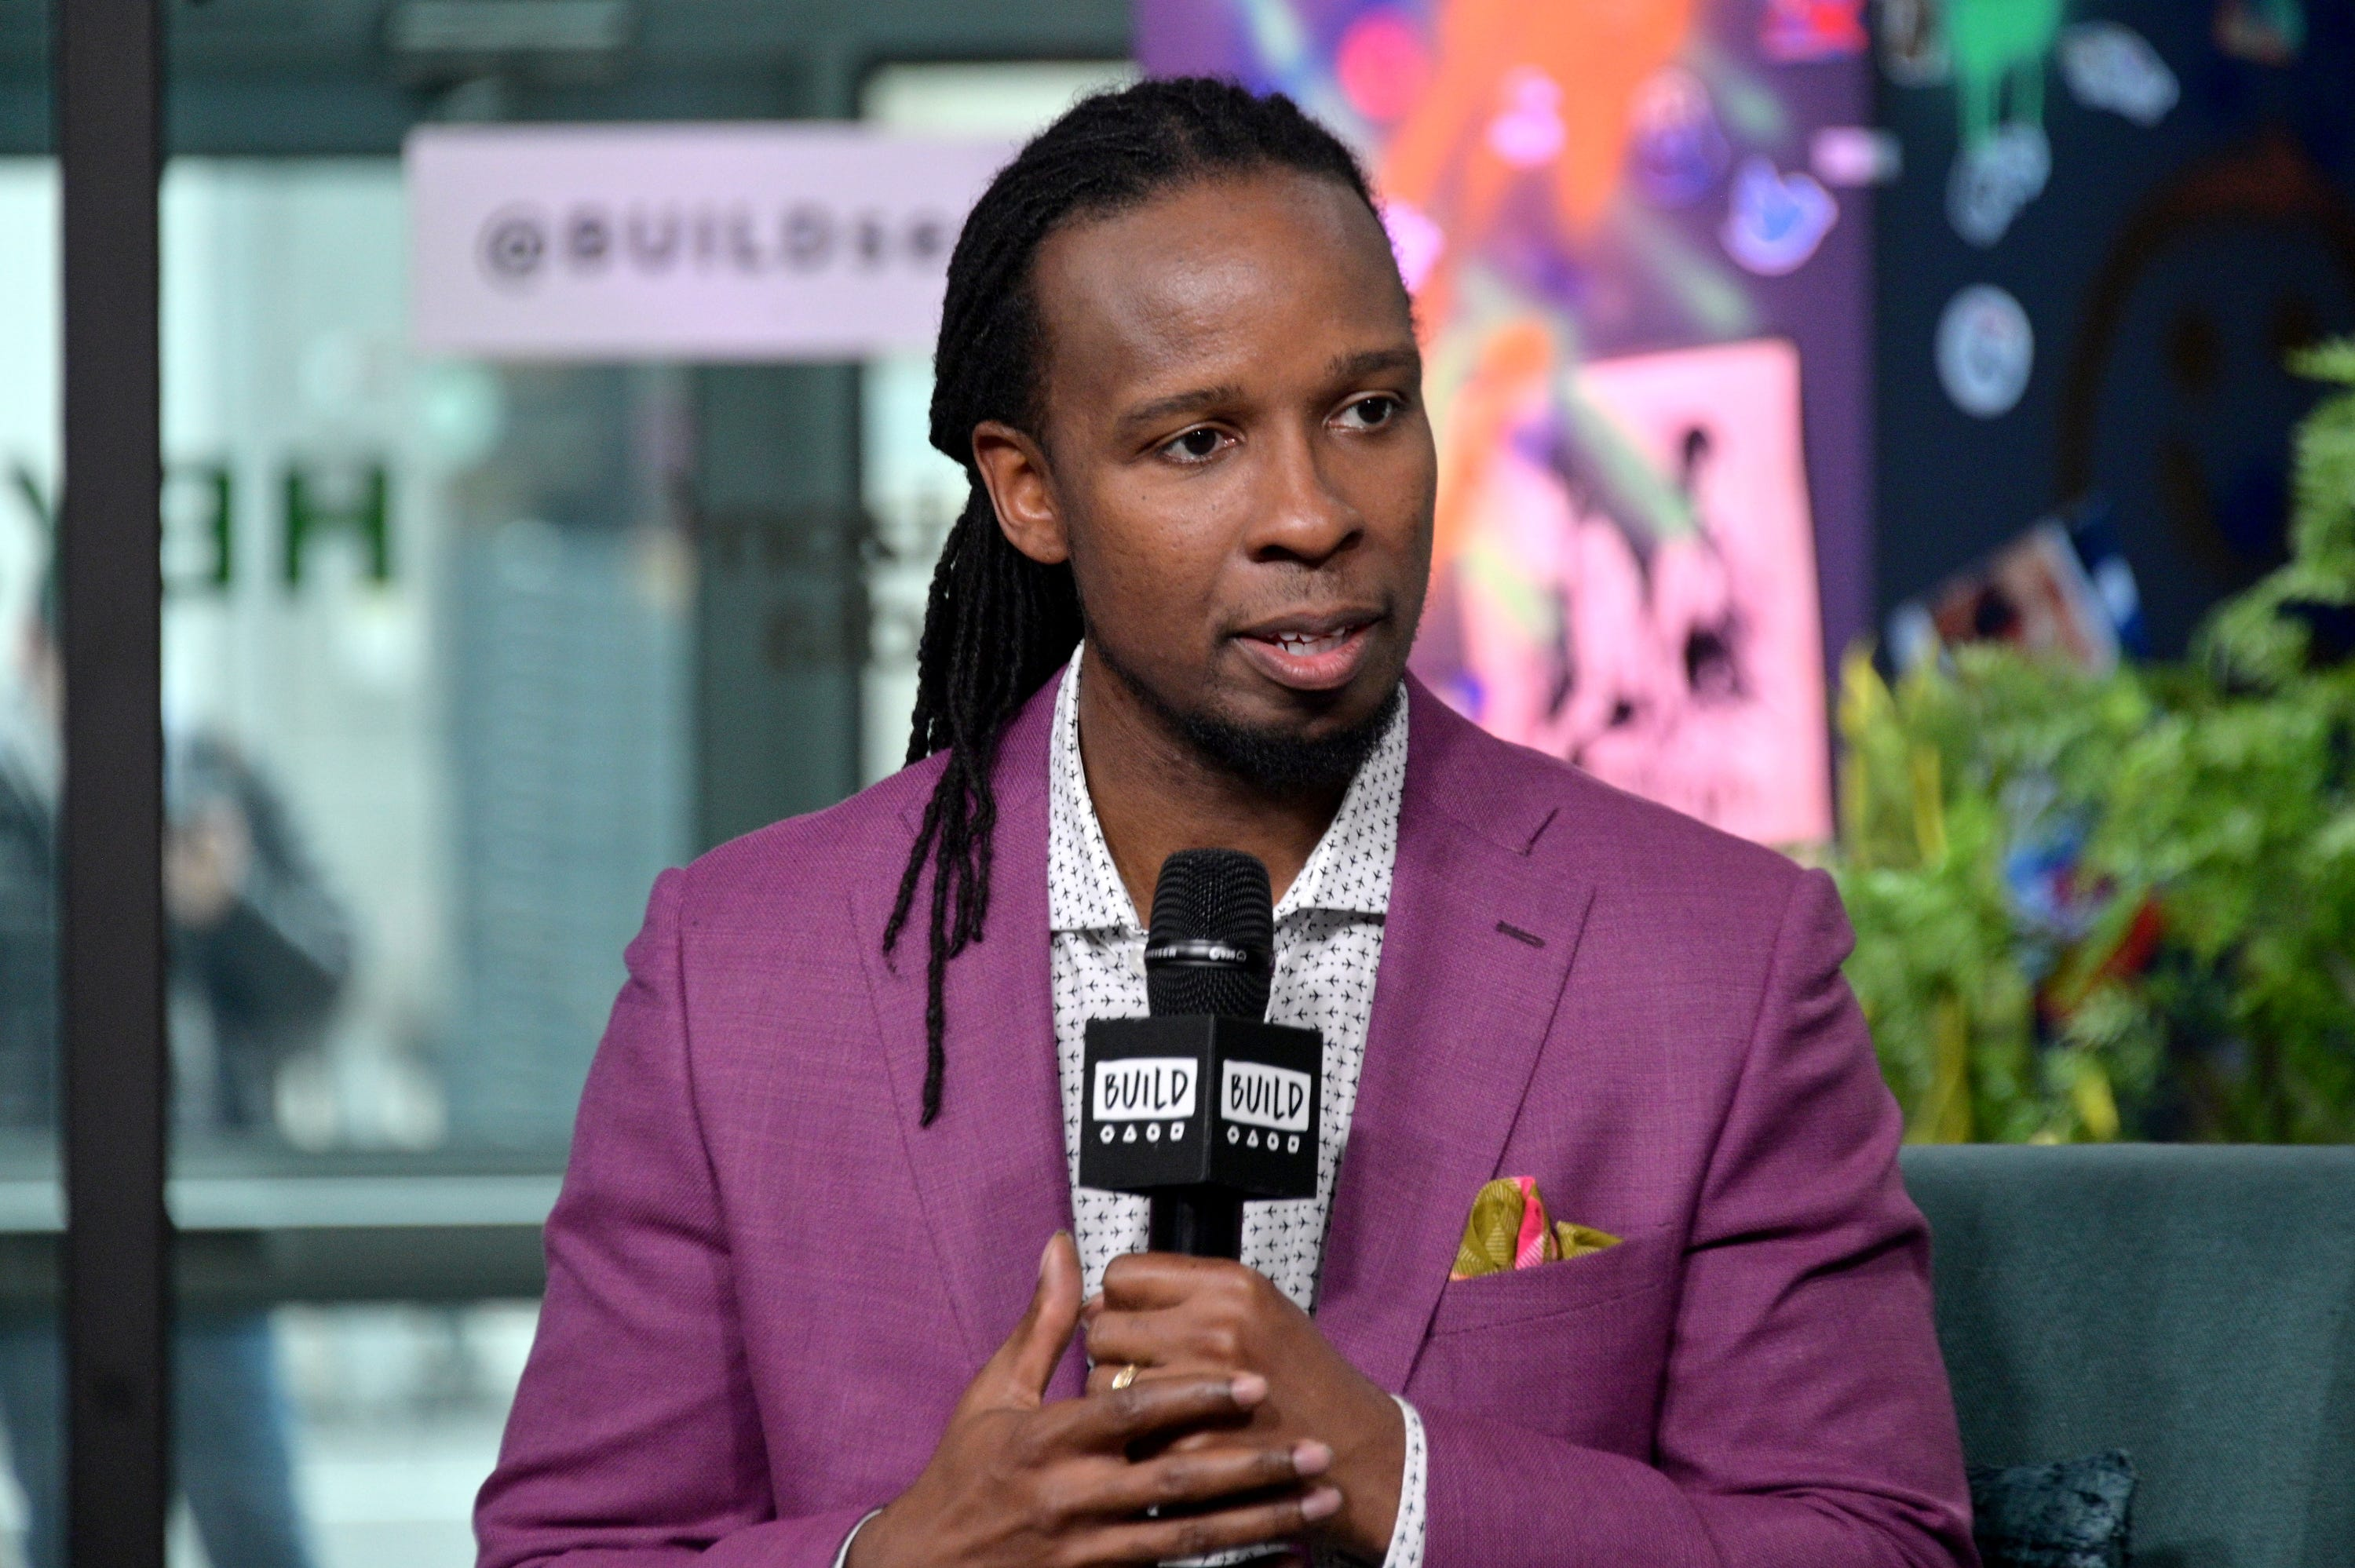 """Ibram X. Kendi discusses the book """"Stamped: Racism, Antiracism and You"""" on March 10, 2020, in New York City."""